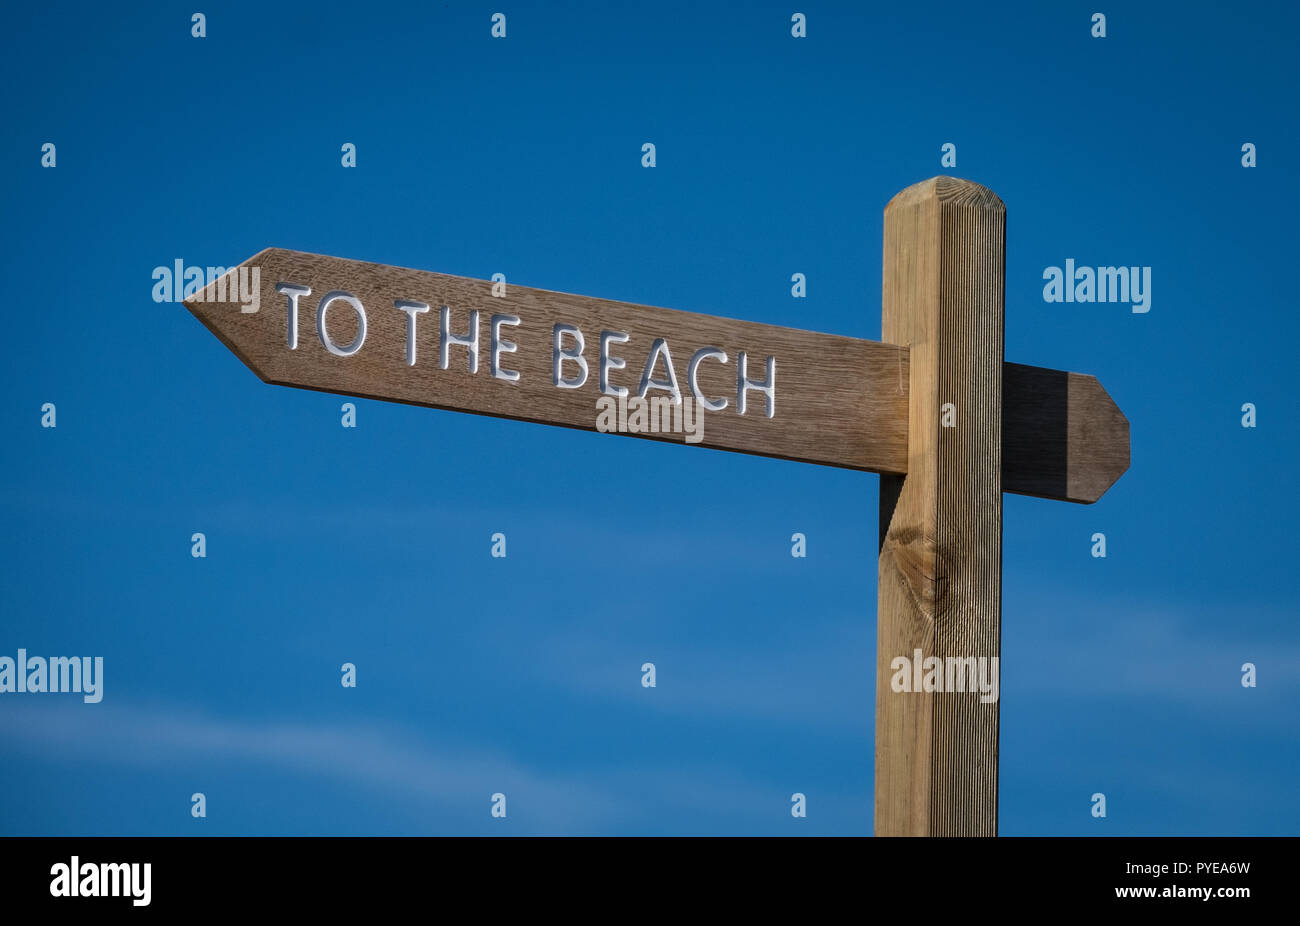 To the beach sign on a sunny day against a blue sky - Stock Image